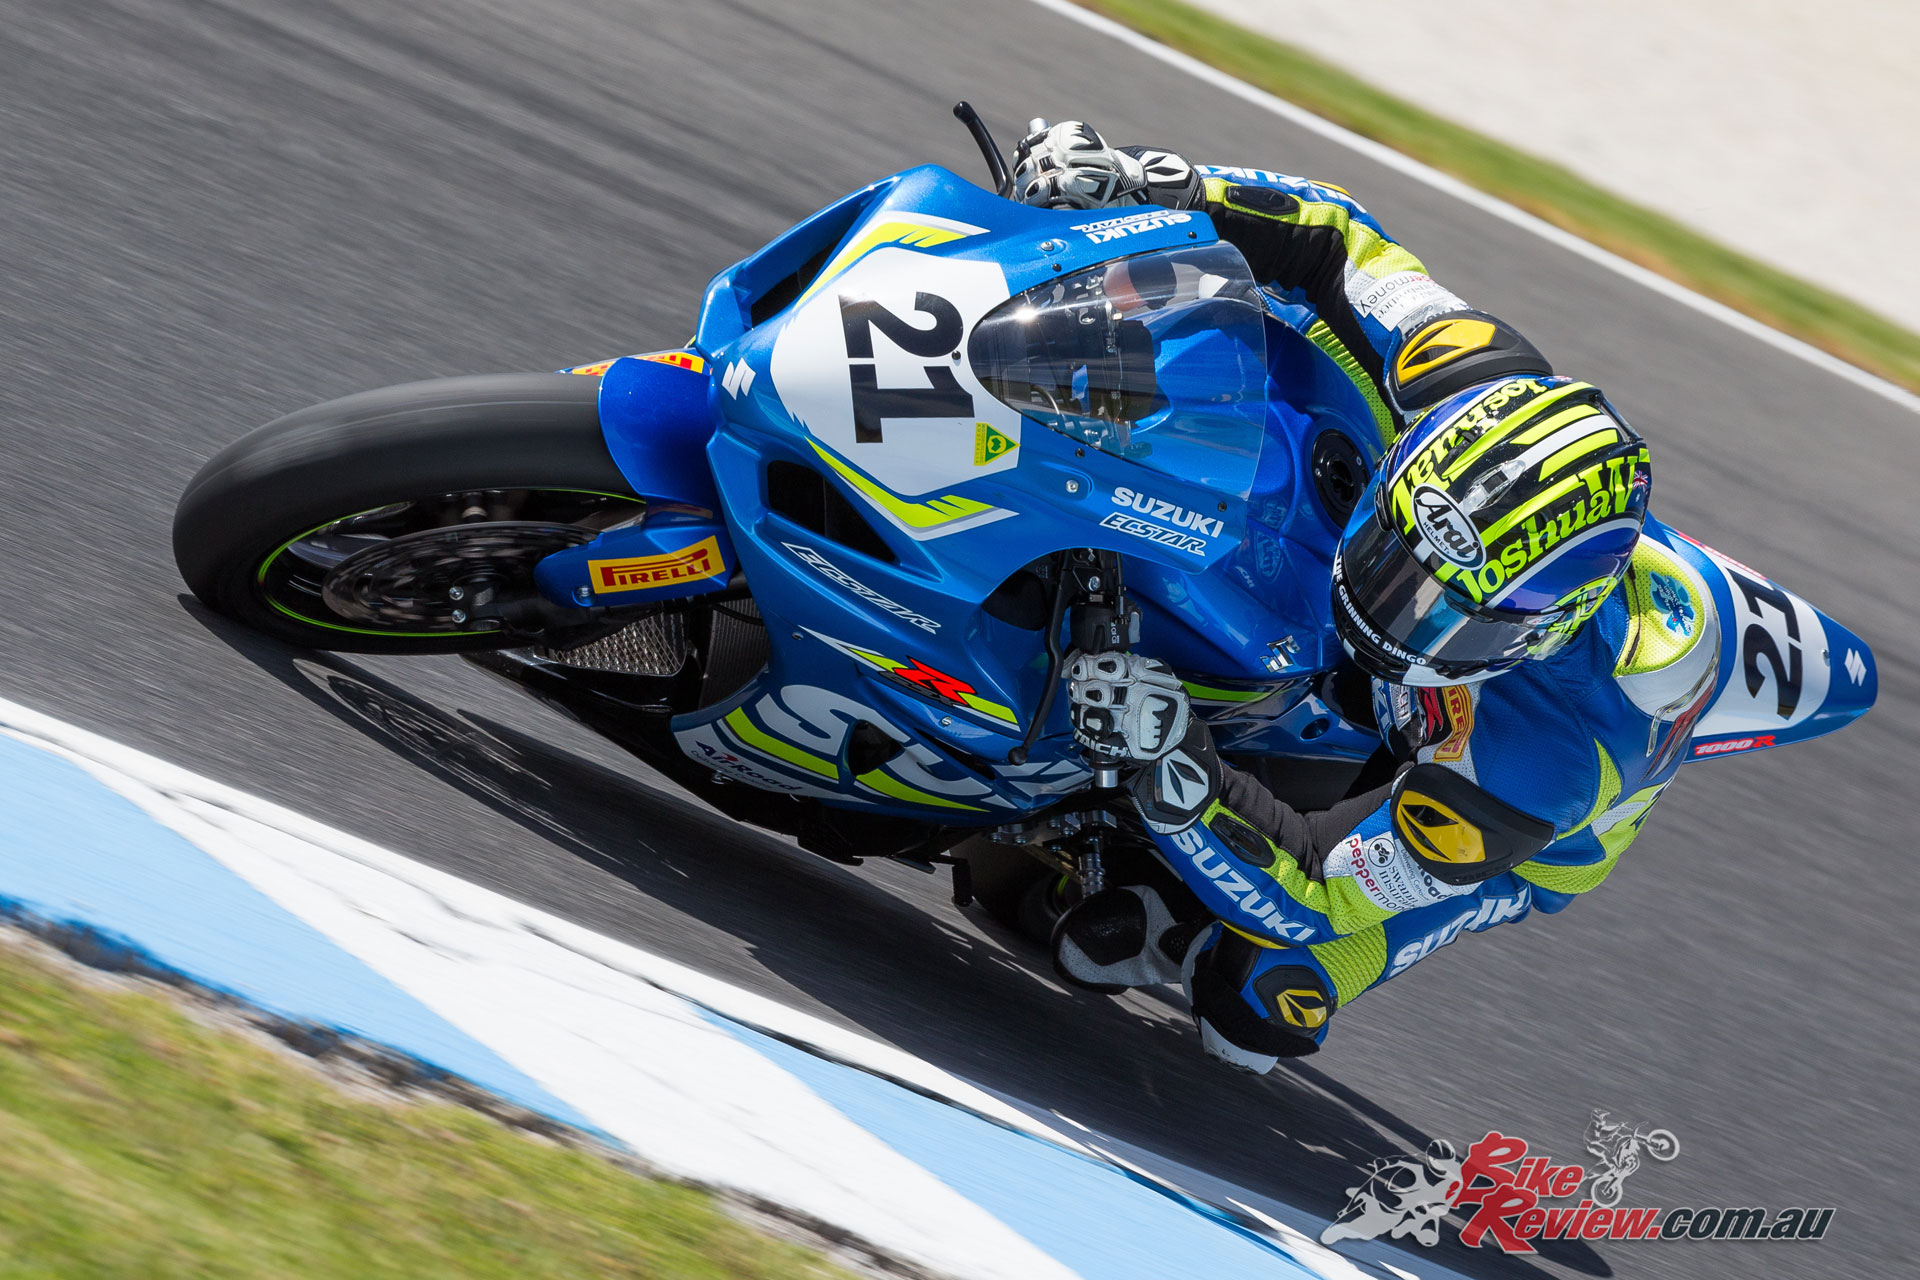 Josh Waters at Phillip Island - Image by TBG Photography